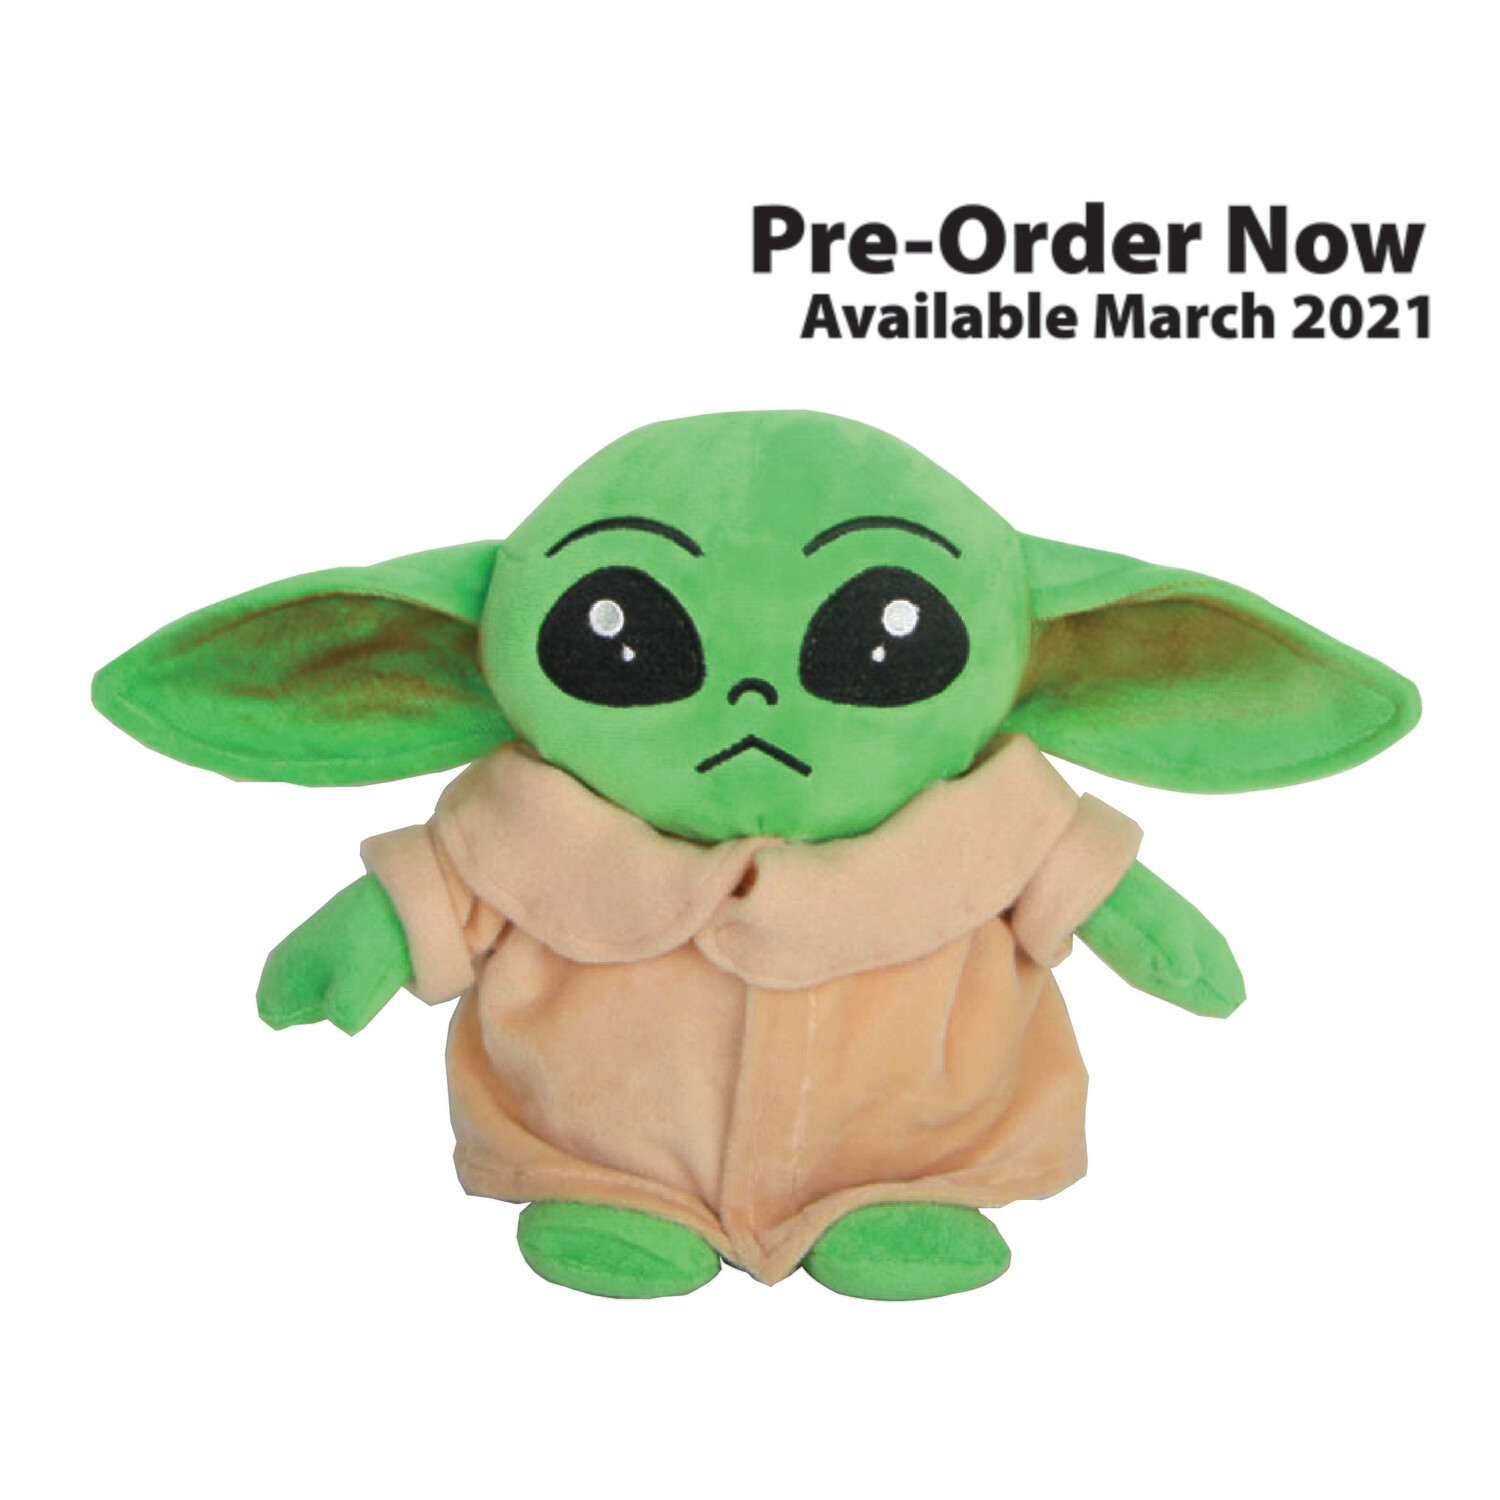 Pre-Order Baby Yoda Plush Collectable Figurines The Child